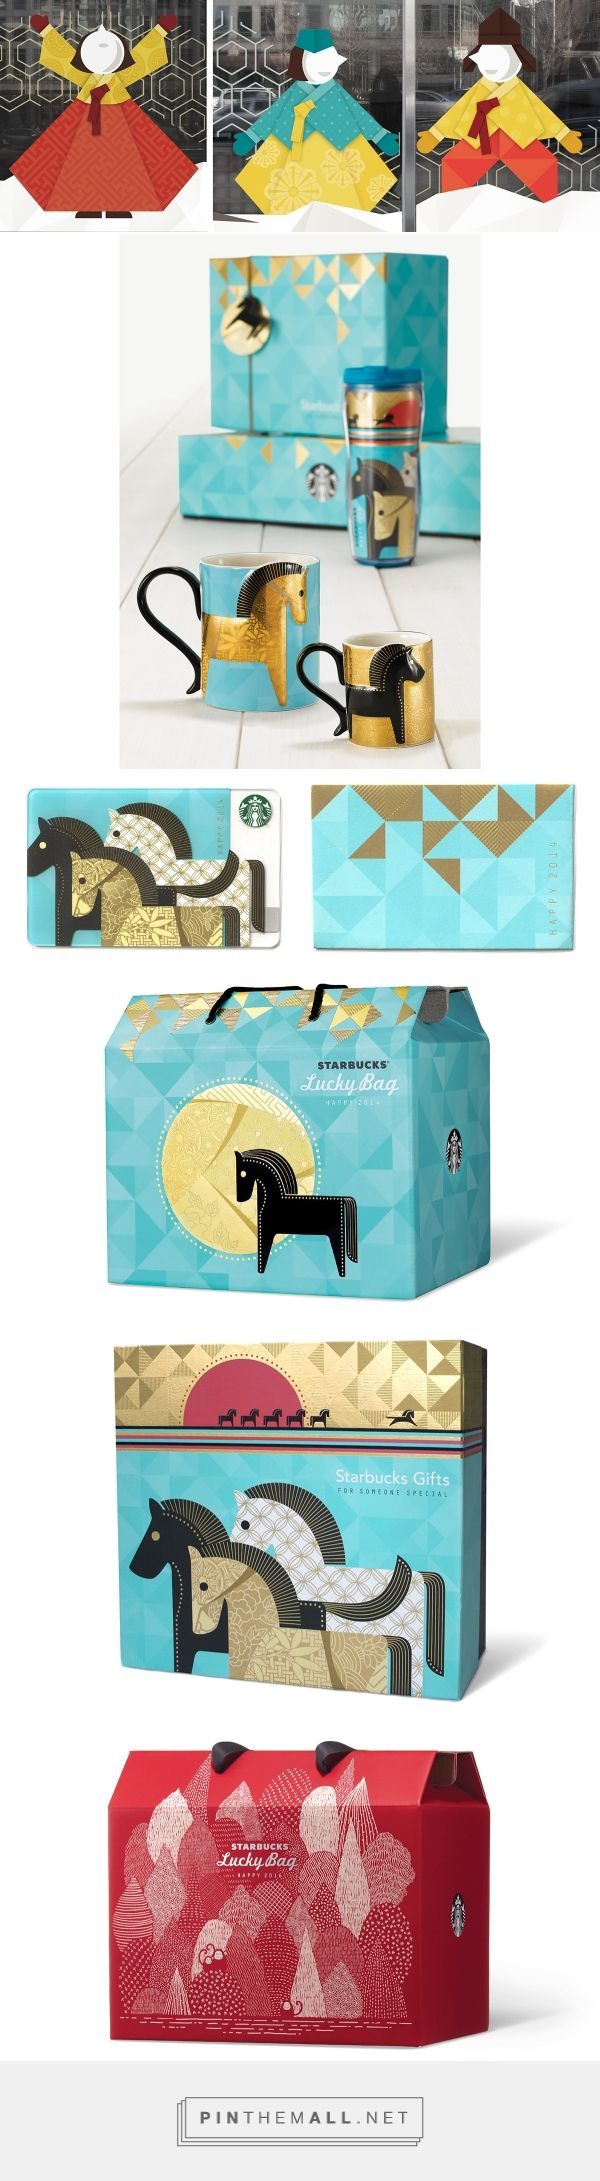 Graphic design, illustration and packaging for Starbucks New Year on Behance by…